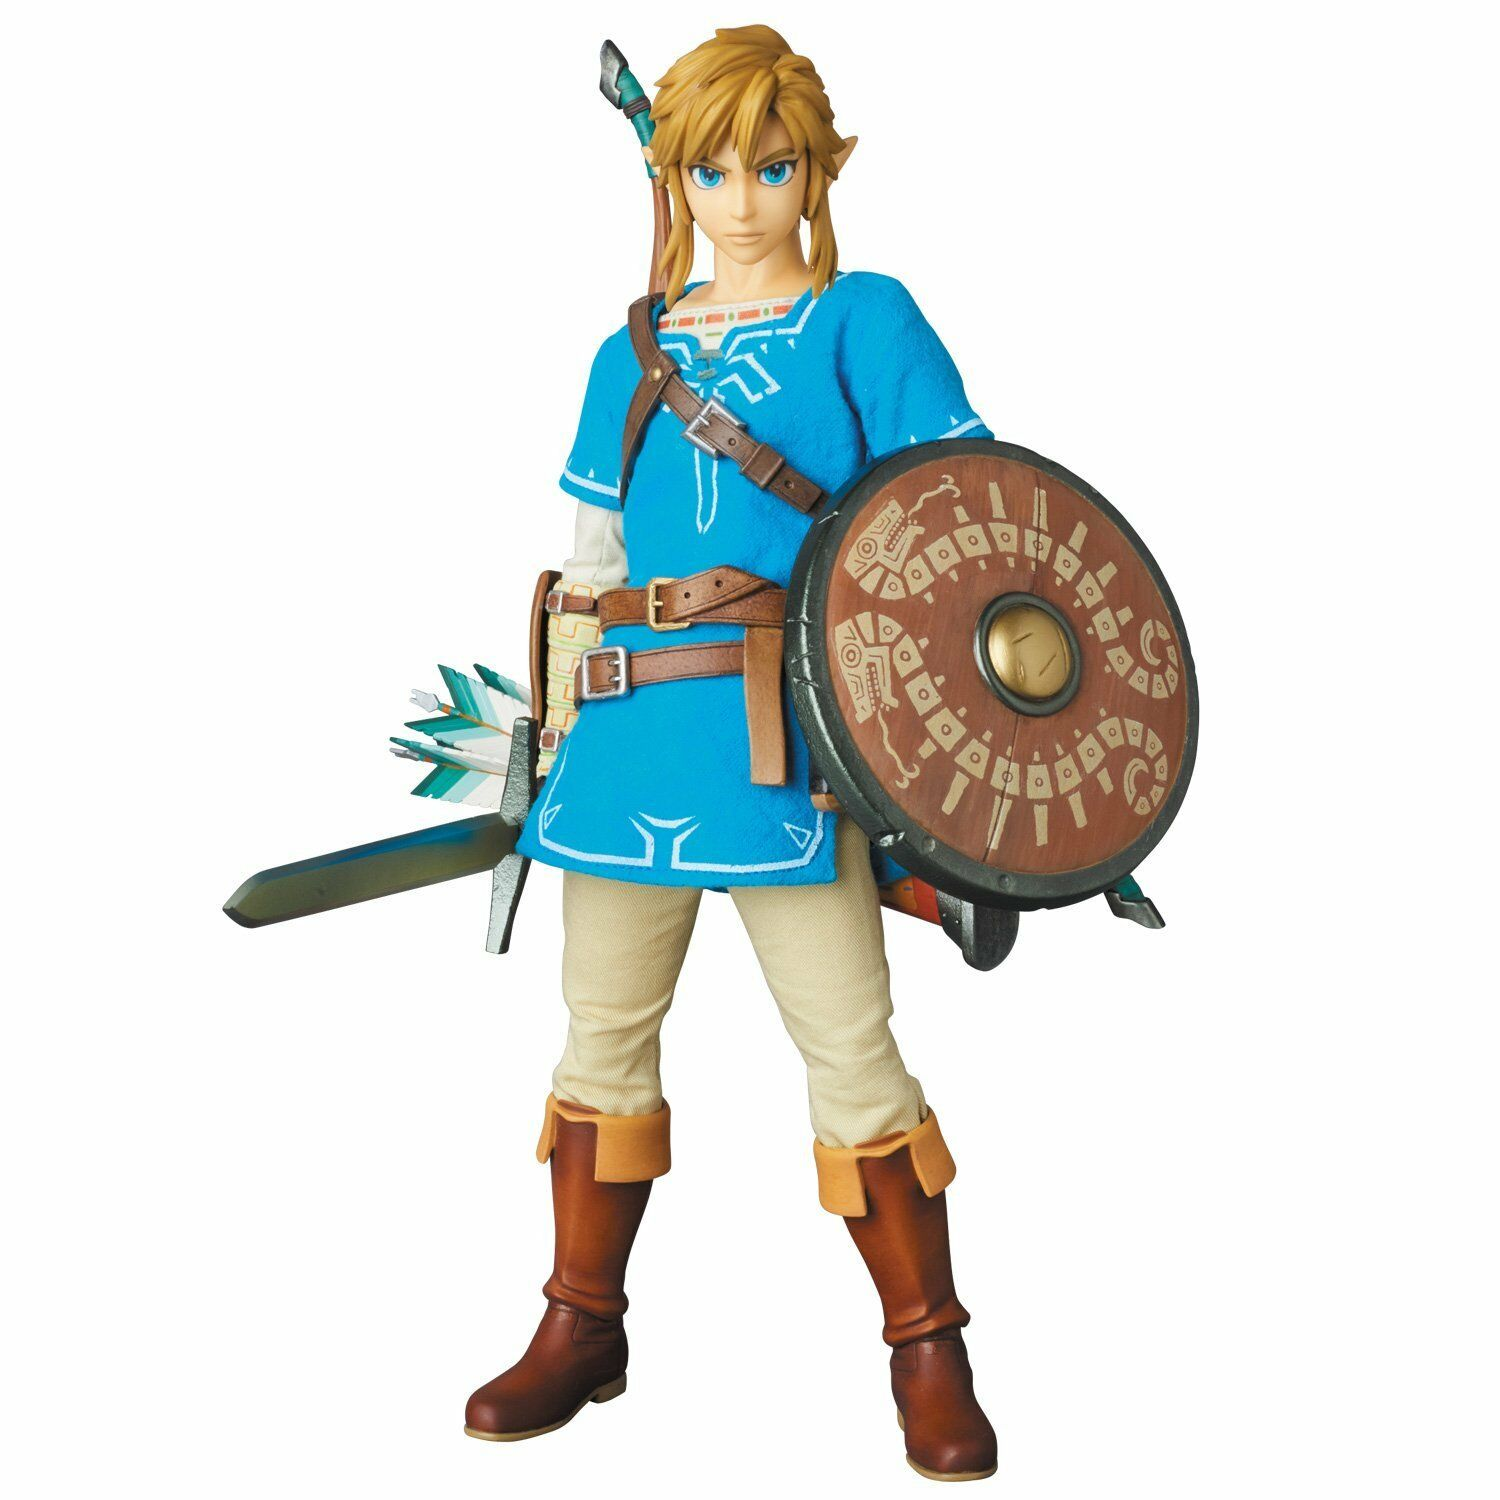 Real Acshi slashi 65533;n Heroes Rah Legend Of Zelda Breath Wild Versi Diverse 5533;65533; n Enlace F Nuevo